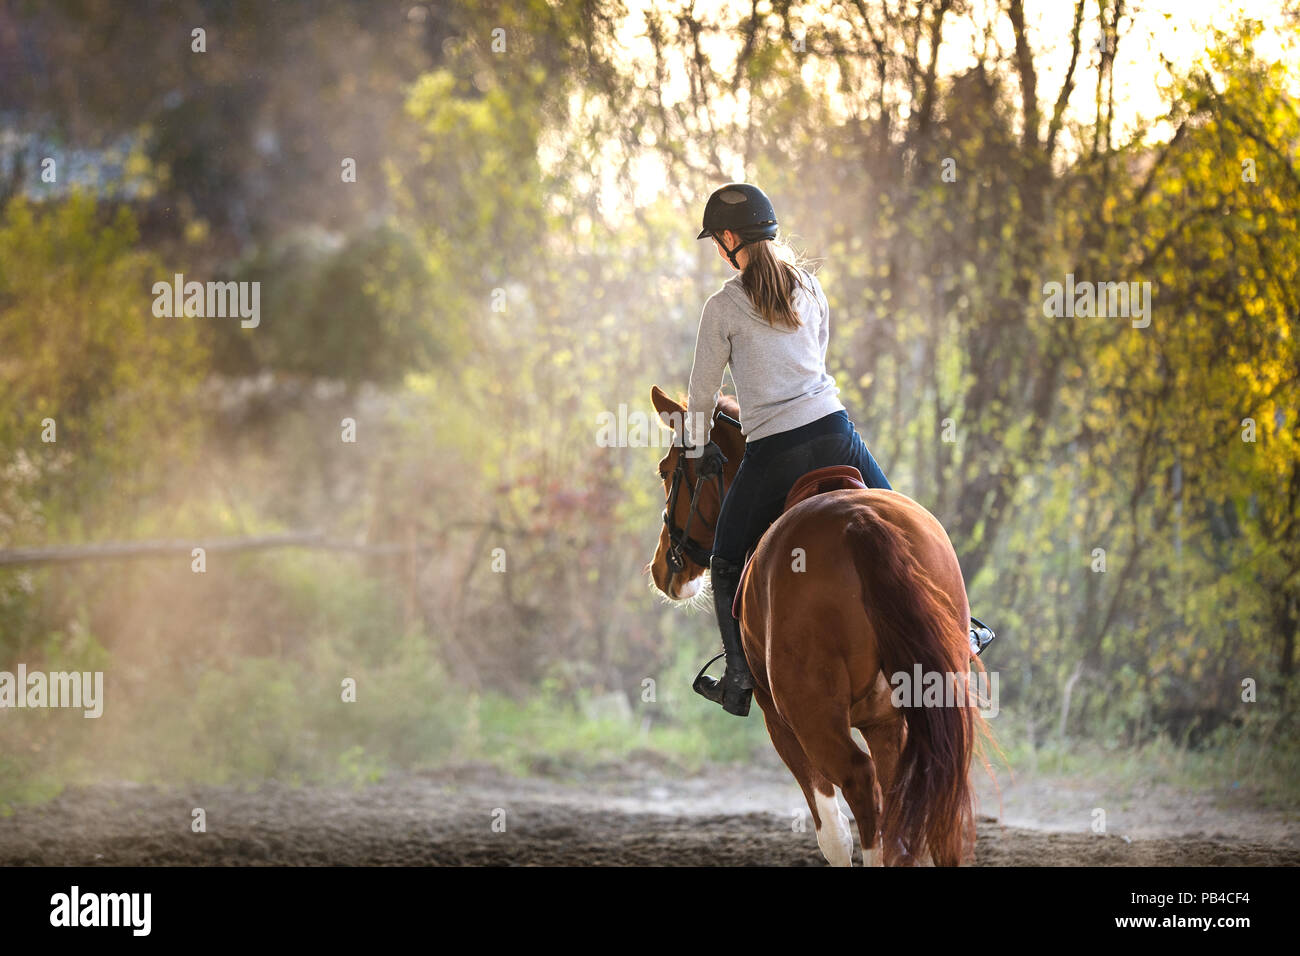 Young pretty girl riding a horse Photo Stock